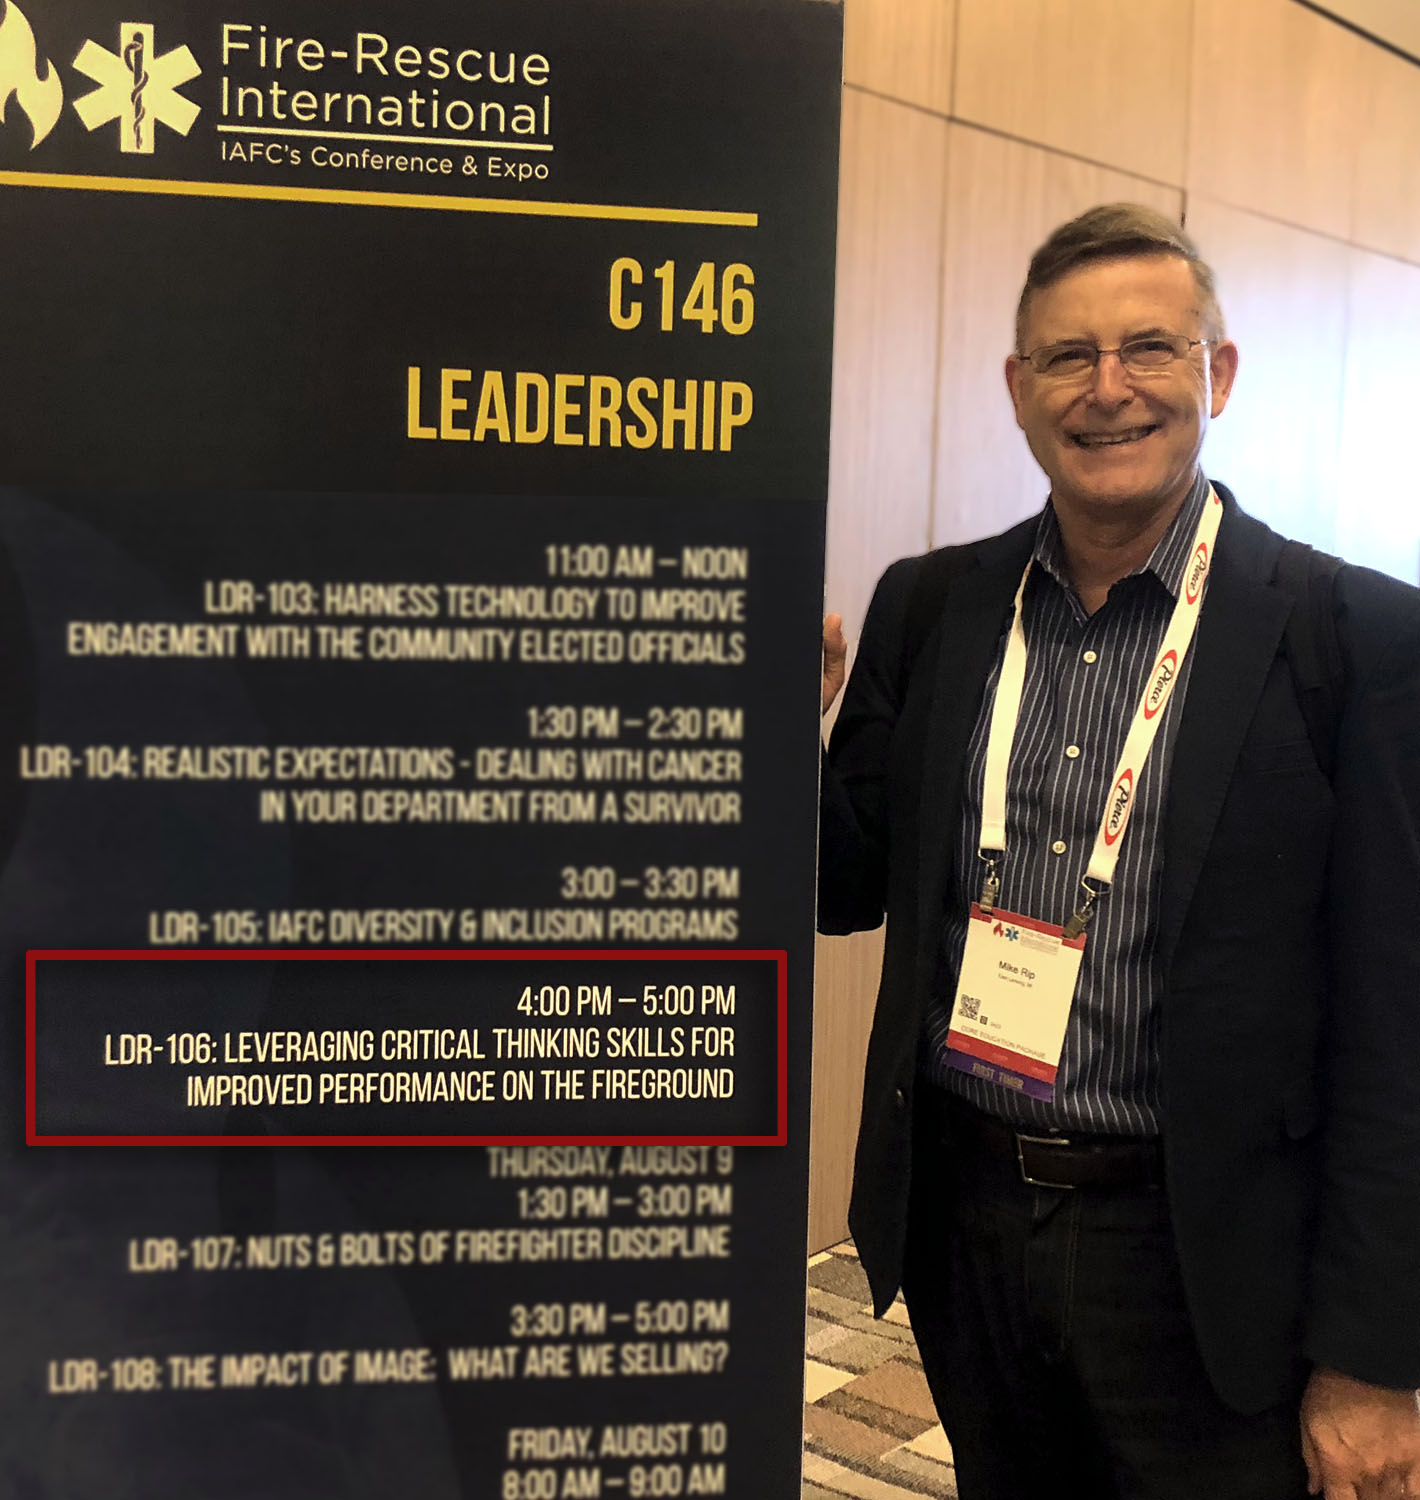 Dr. Rip at the International Association of Fire Chiefs (IAFC) Conference.